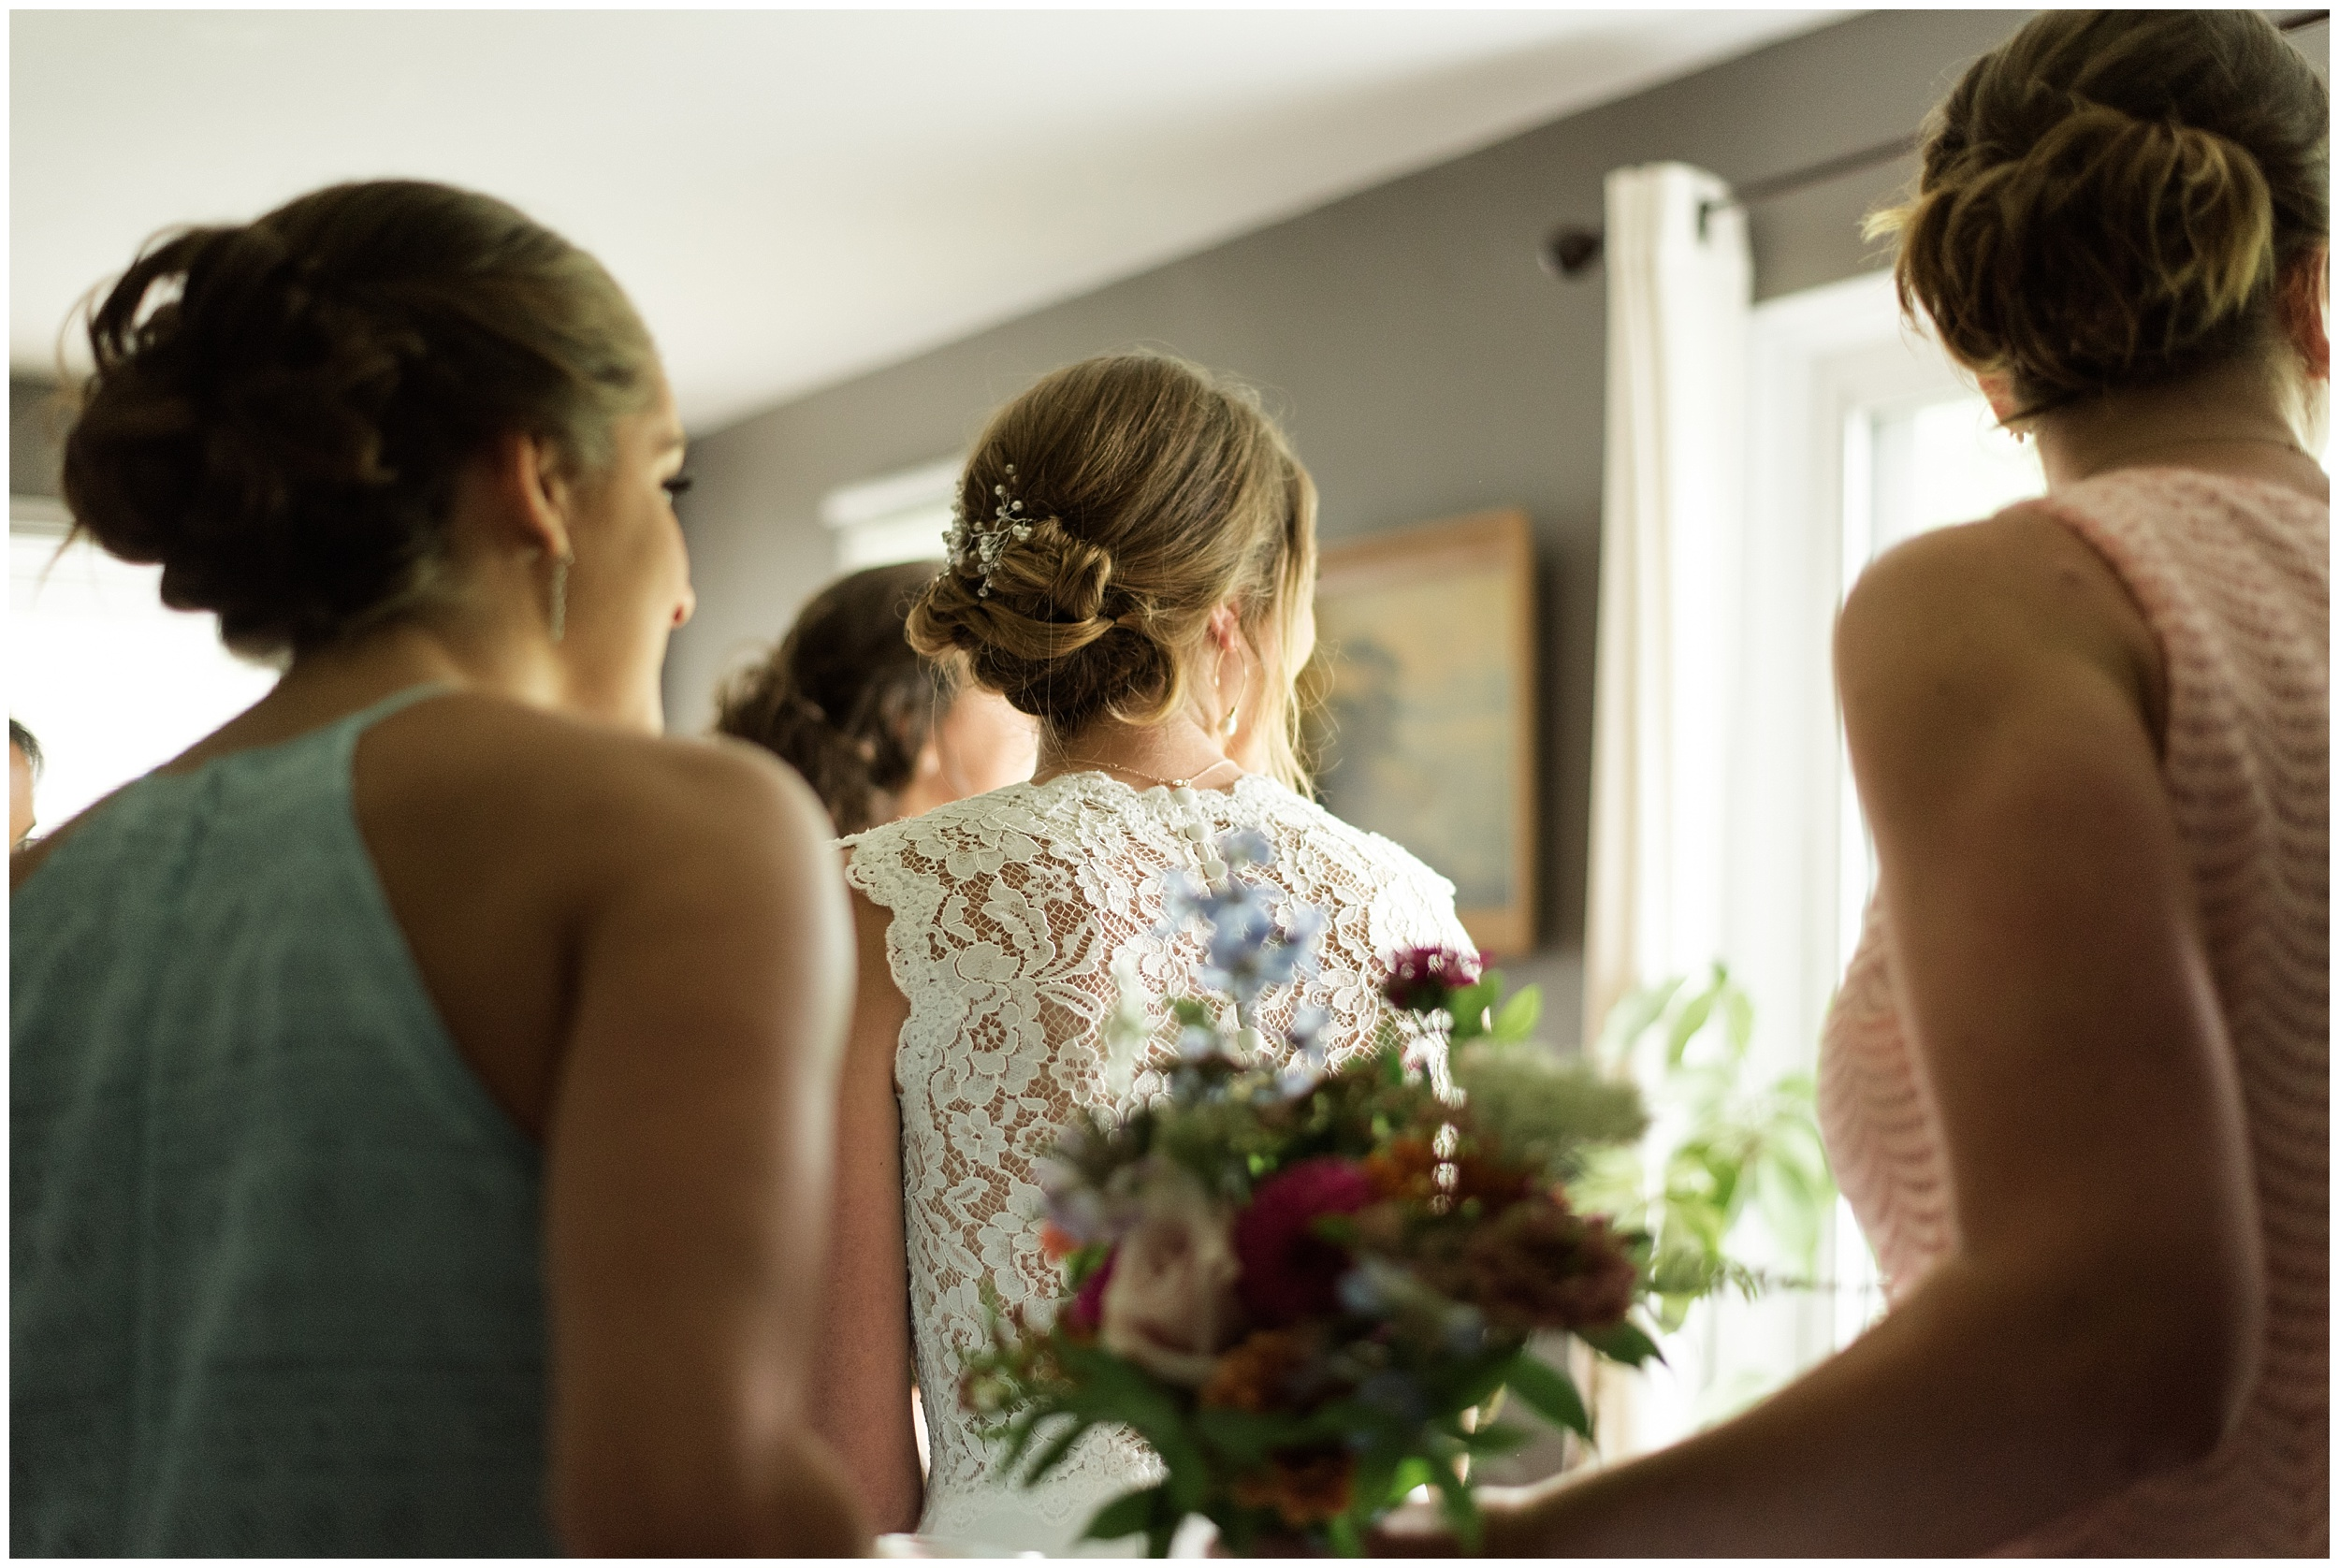 Whimsical-Ethereal-July-Kalamazoo-Wedding-Bright-Airy-Documentary-Milwaukee-Photographer_0026.jpg